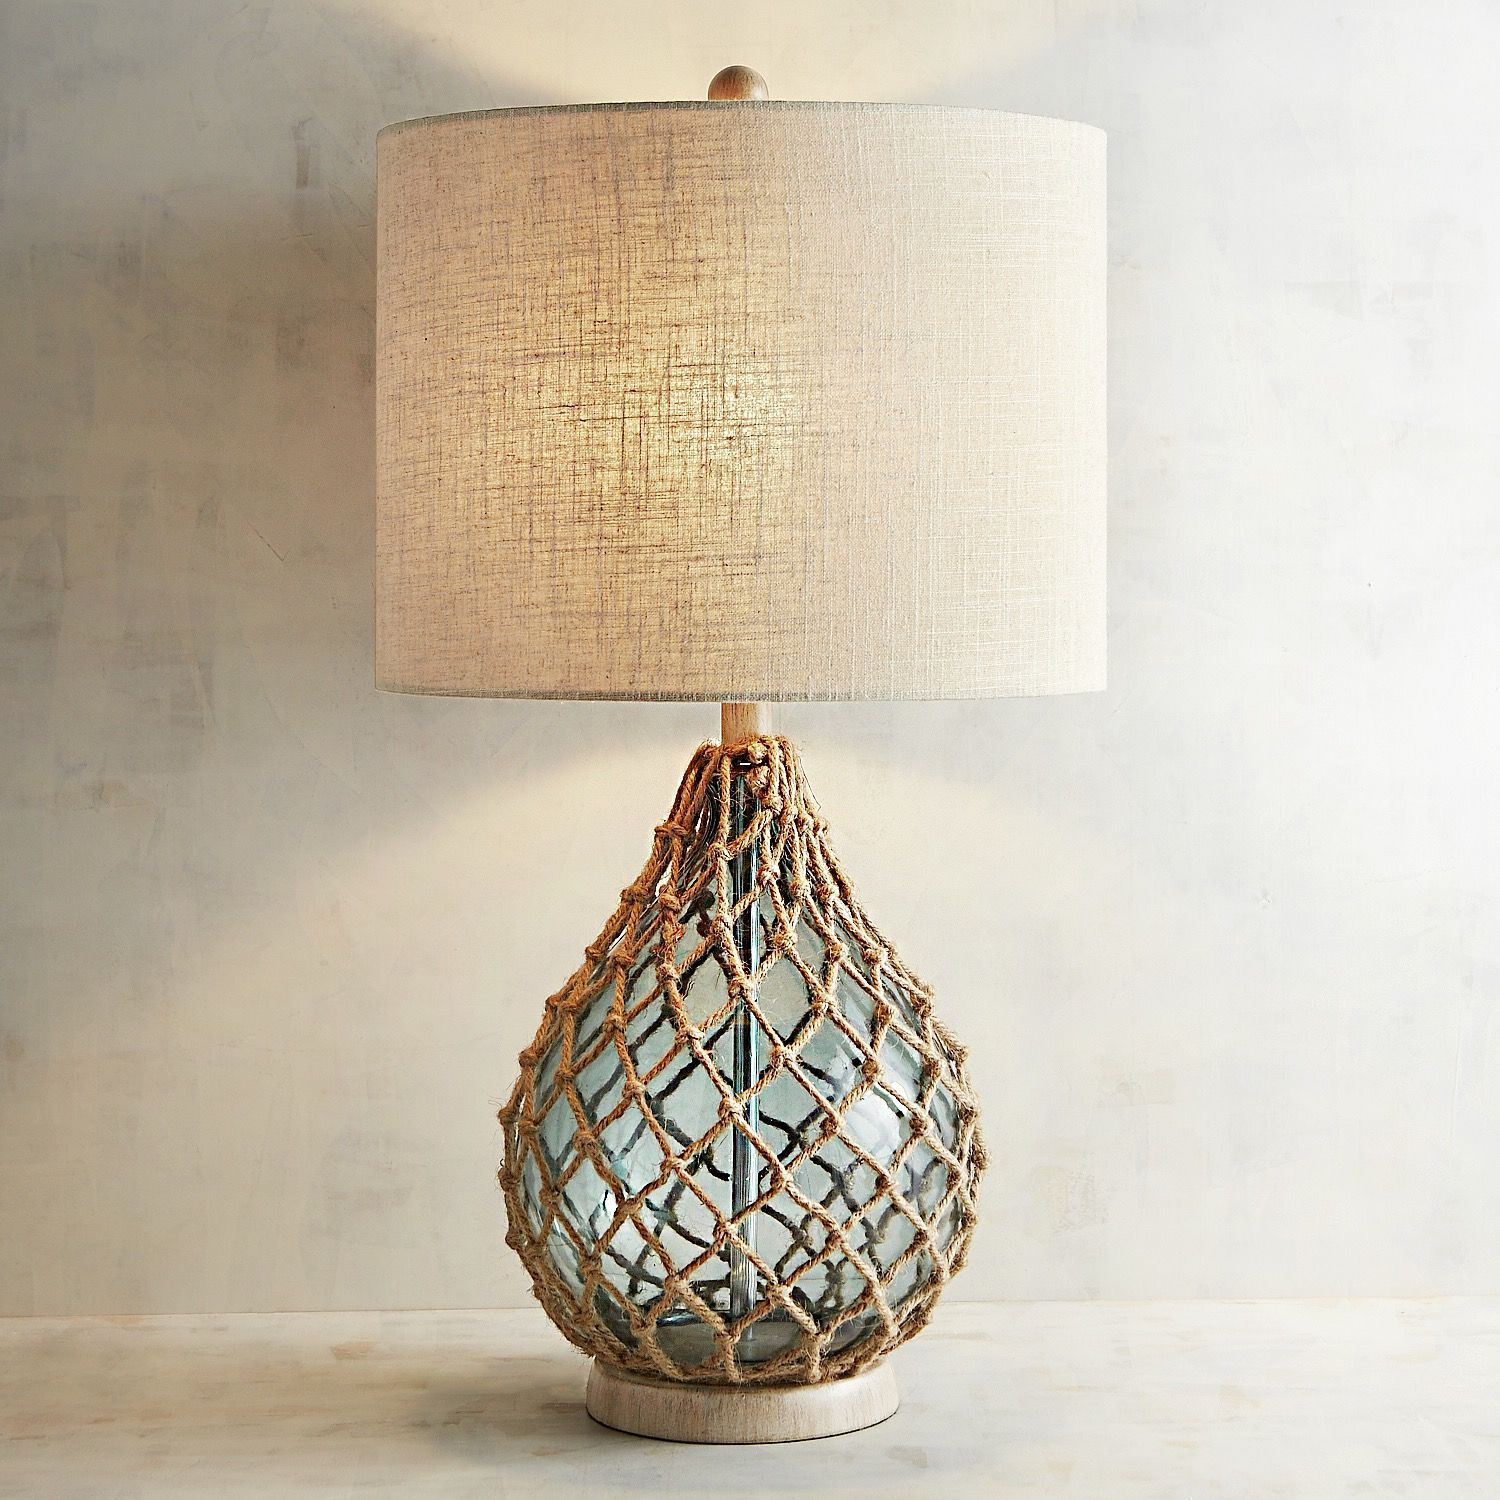 Pier One Table Lamps Rope And Sea Glass Table Lamp Pier 1 Imports Pier One Table Lamps